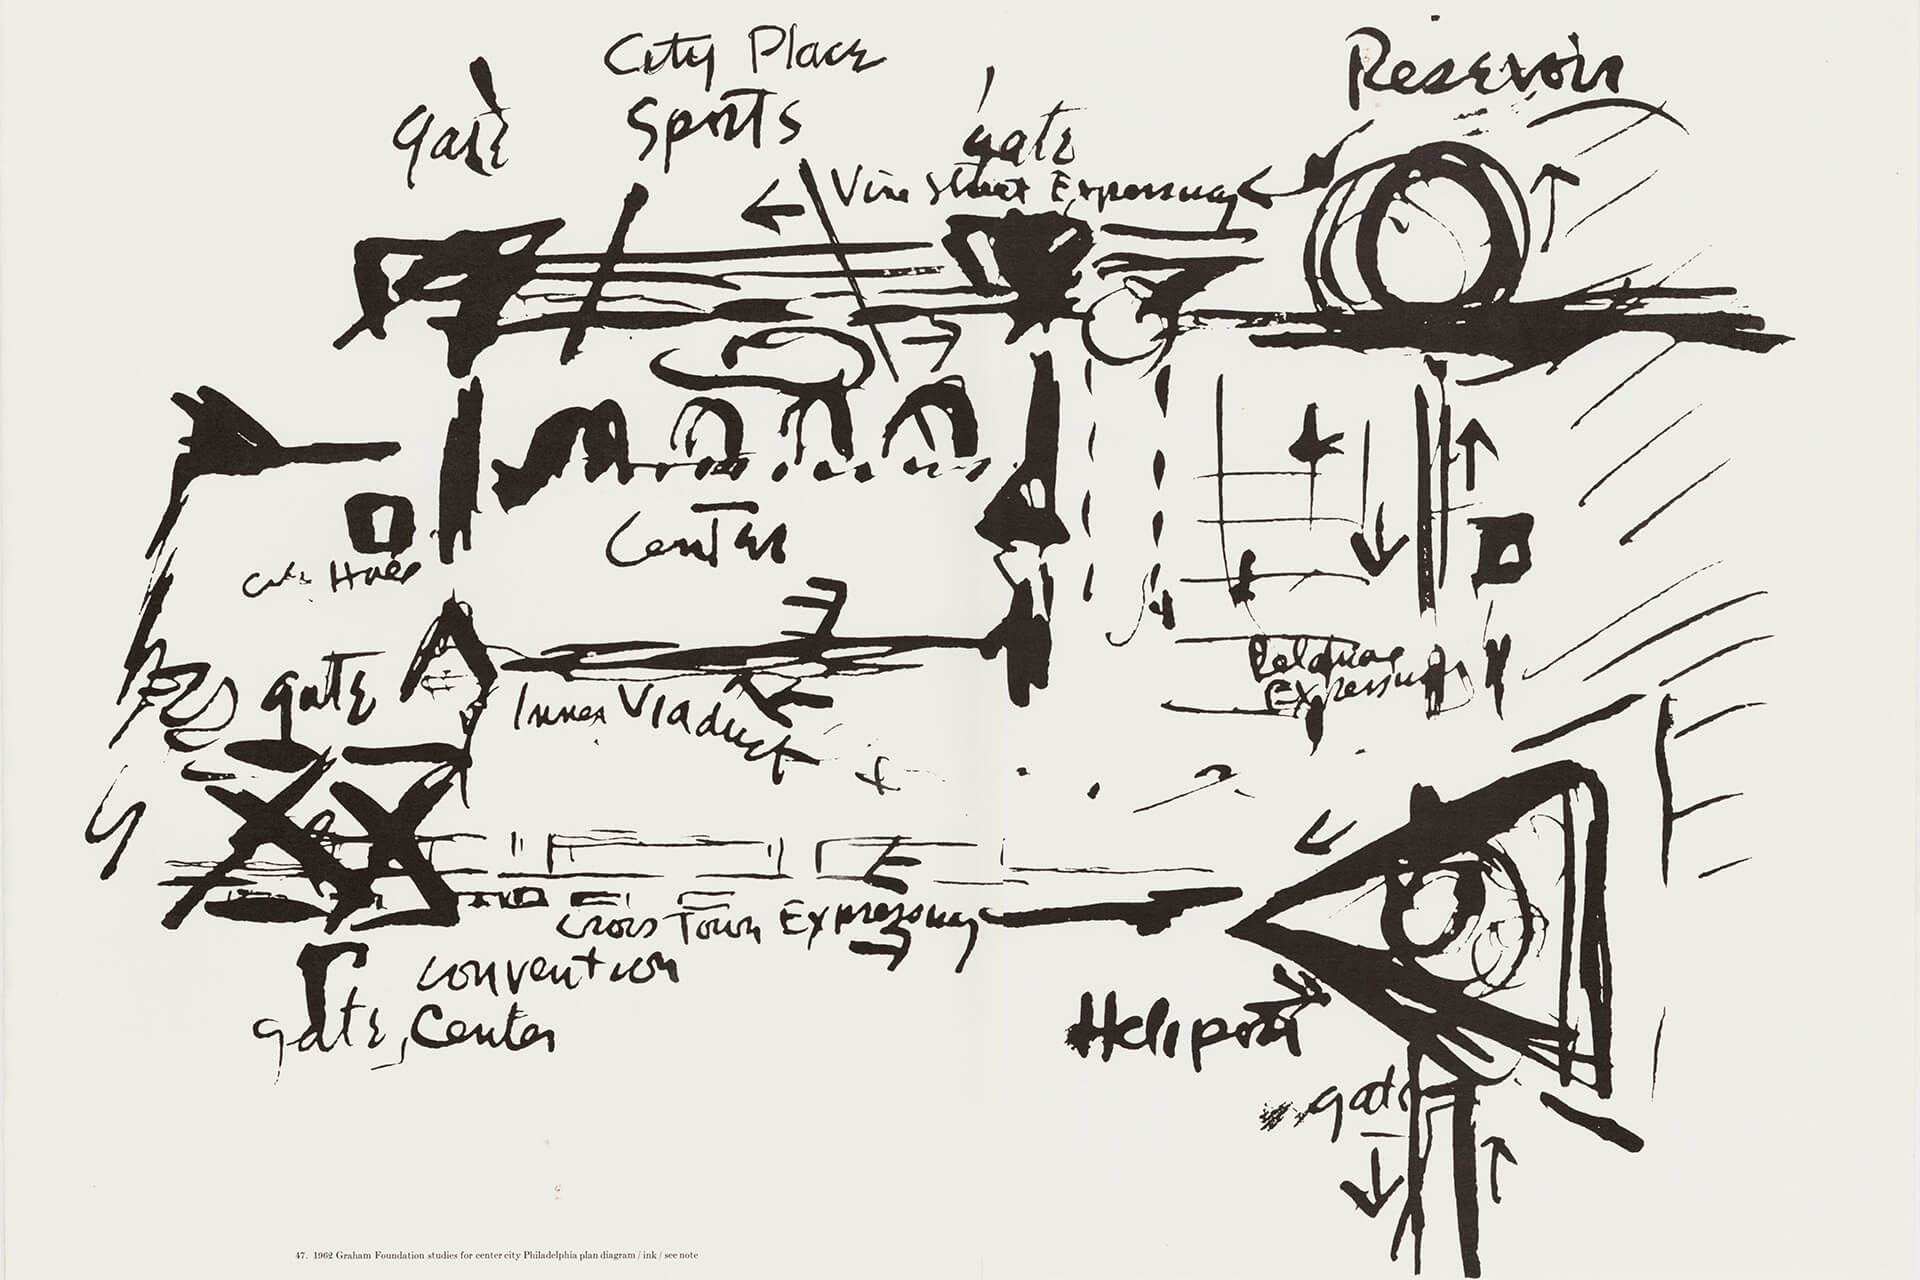 1962 Graham Foundation studies for center city Philadelphia, plan diagram, ink | Louis Kahn Tribute, The Notebooks and Drawings of Louis I. Kahn | Louis Kahn, Designers and Books| STIRworld